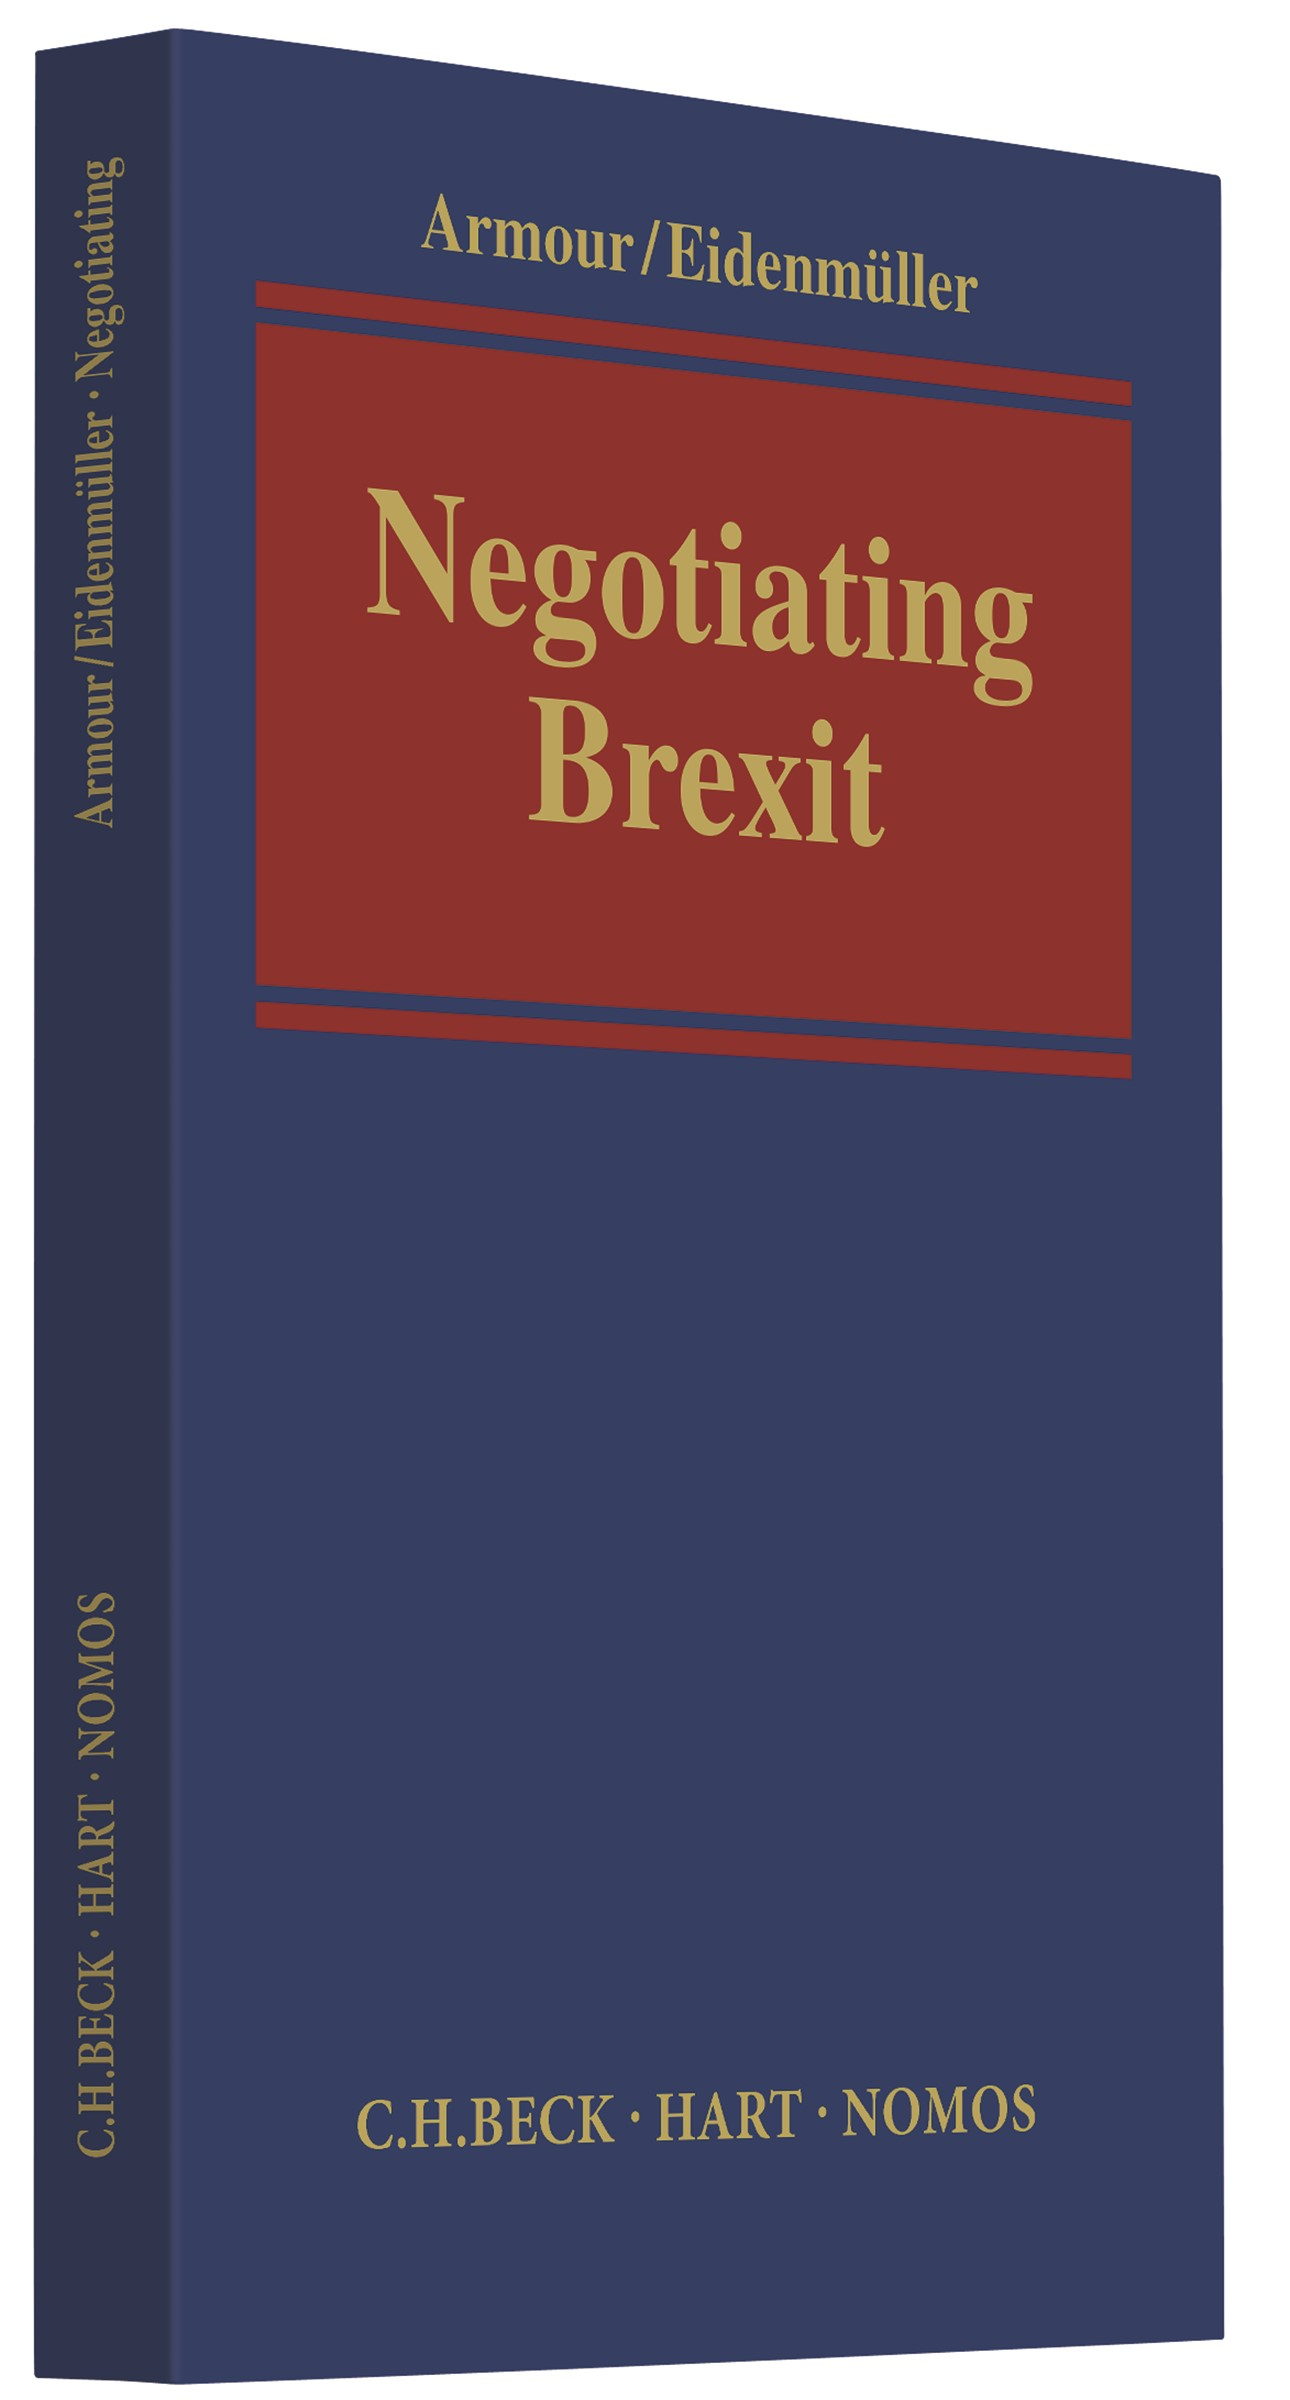 Negotiating Brexit | Armour / Eidenmüller, 2017 | Buch (Cover)